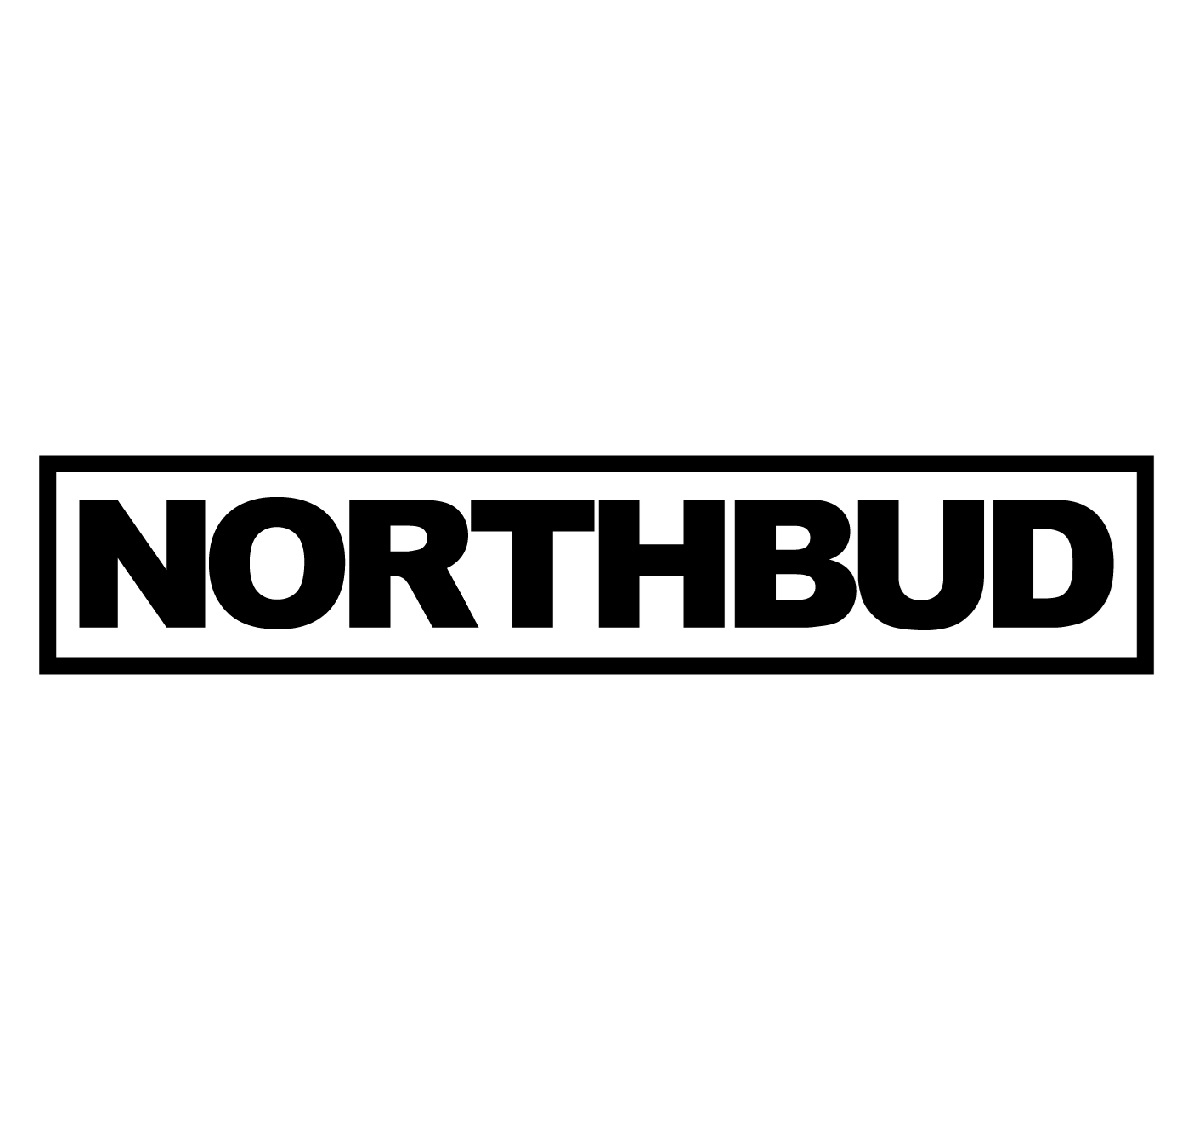 North Bud Farms Receives Canadian Cultivation Licence for its Quebec Facility